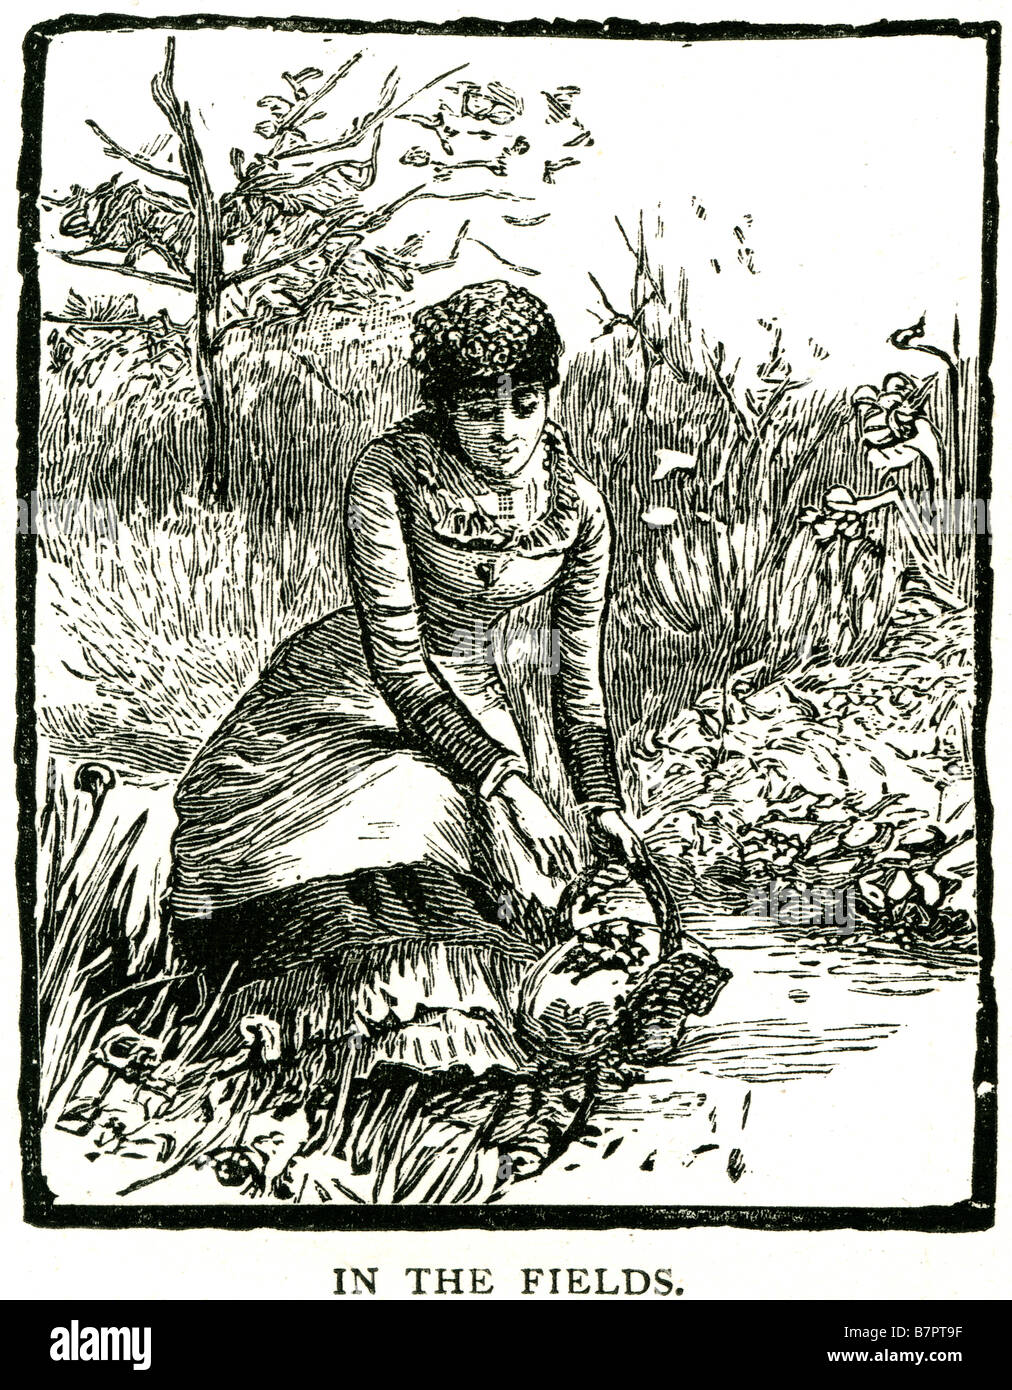 Fields country side women lady picking outside traditional clothing summer outside flowers crouched park